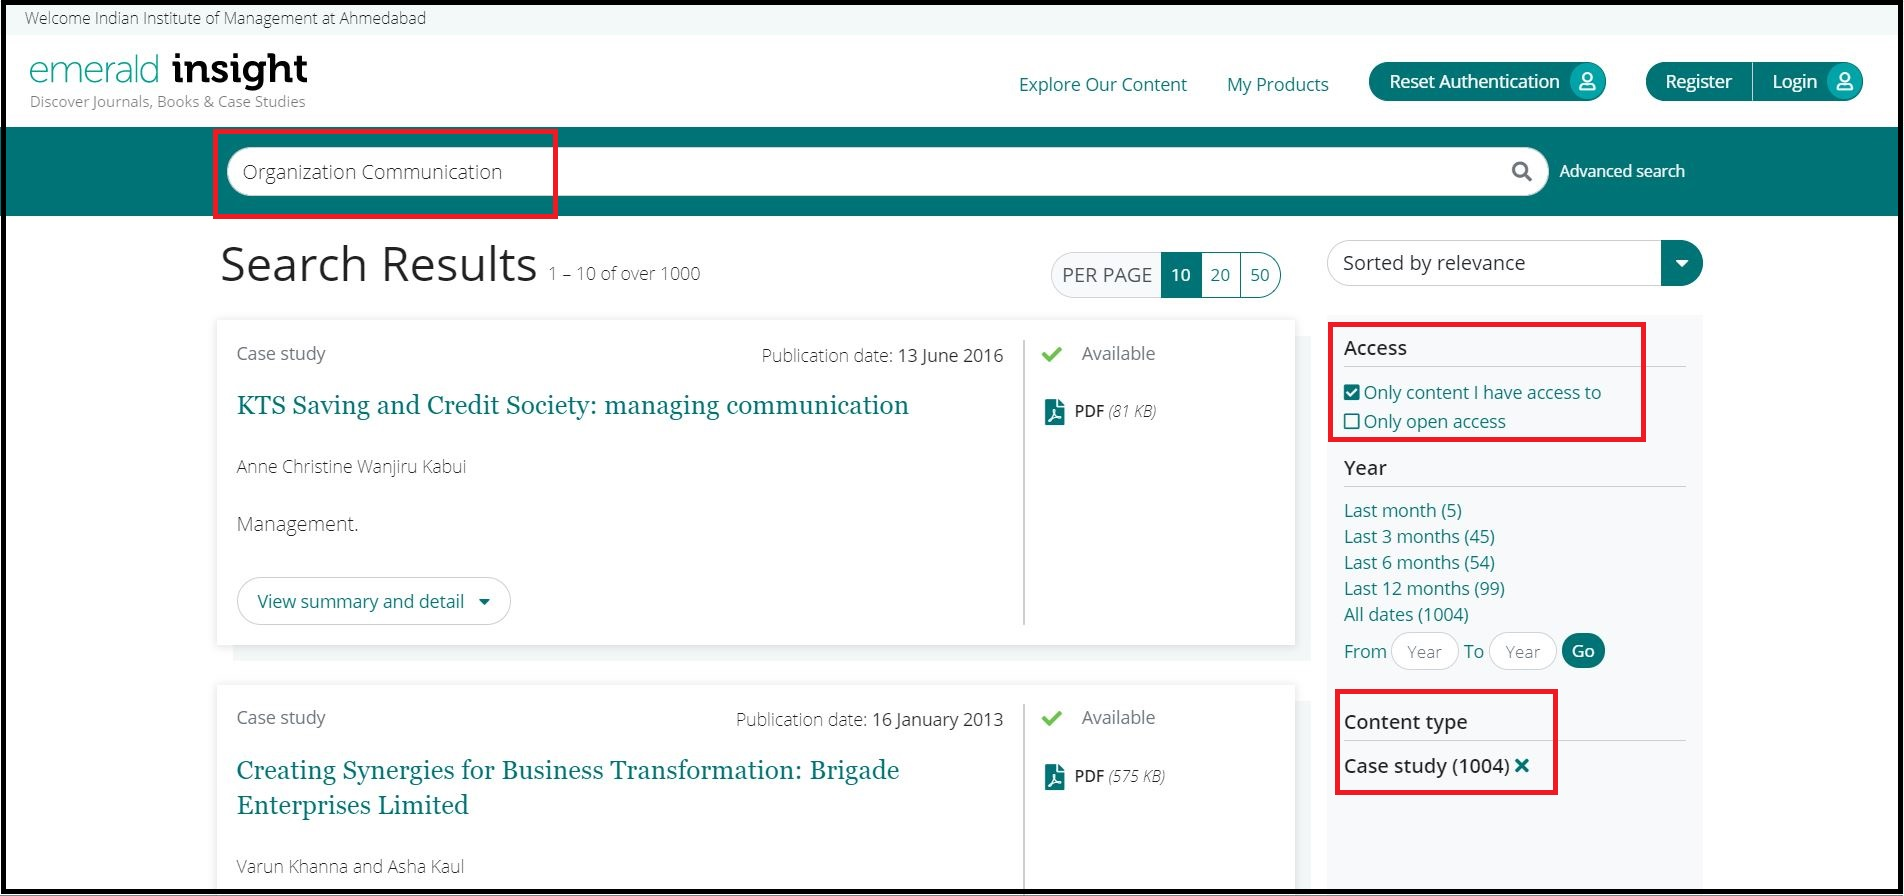 Open Emerald eCases then Search for Required Subjects and Click on Required Content Type